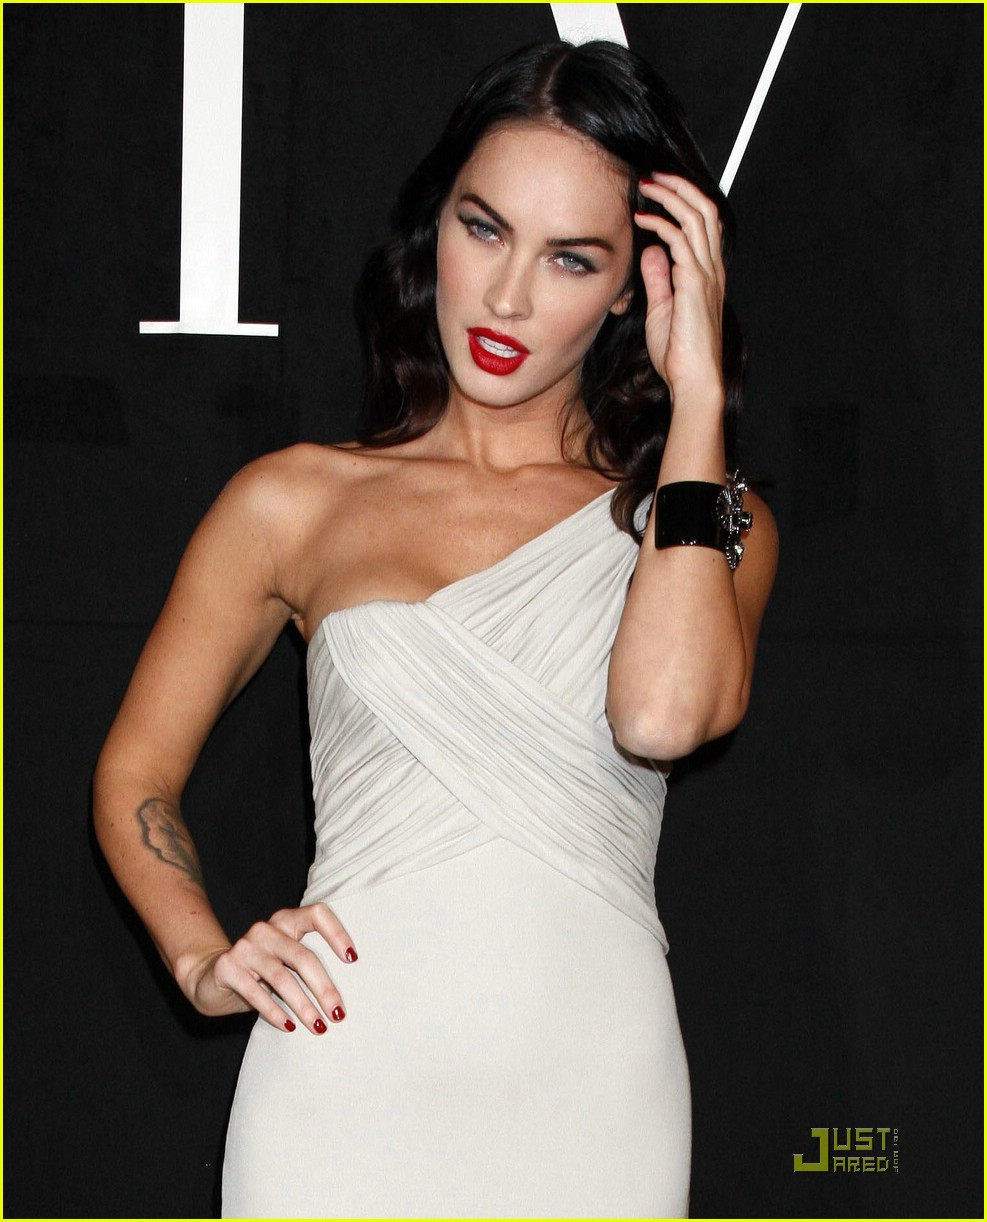 Sexy Girls: Megan Fox in a beautiful dress pictures